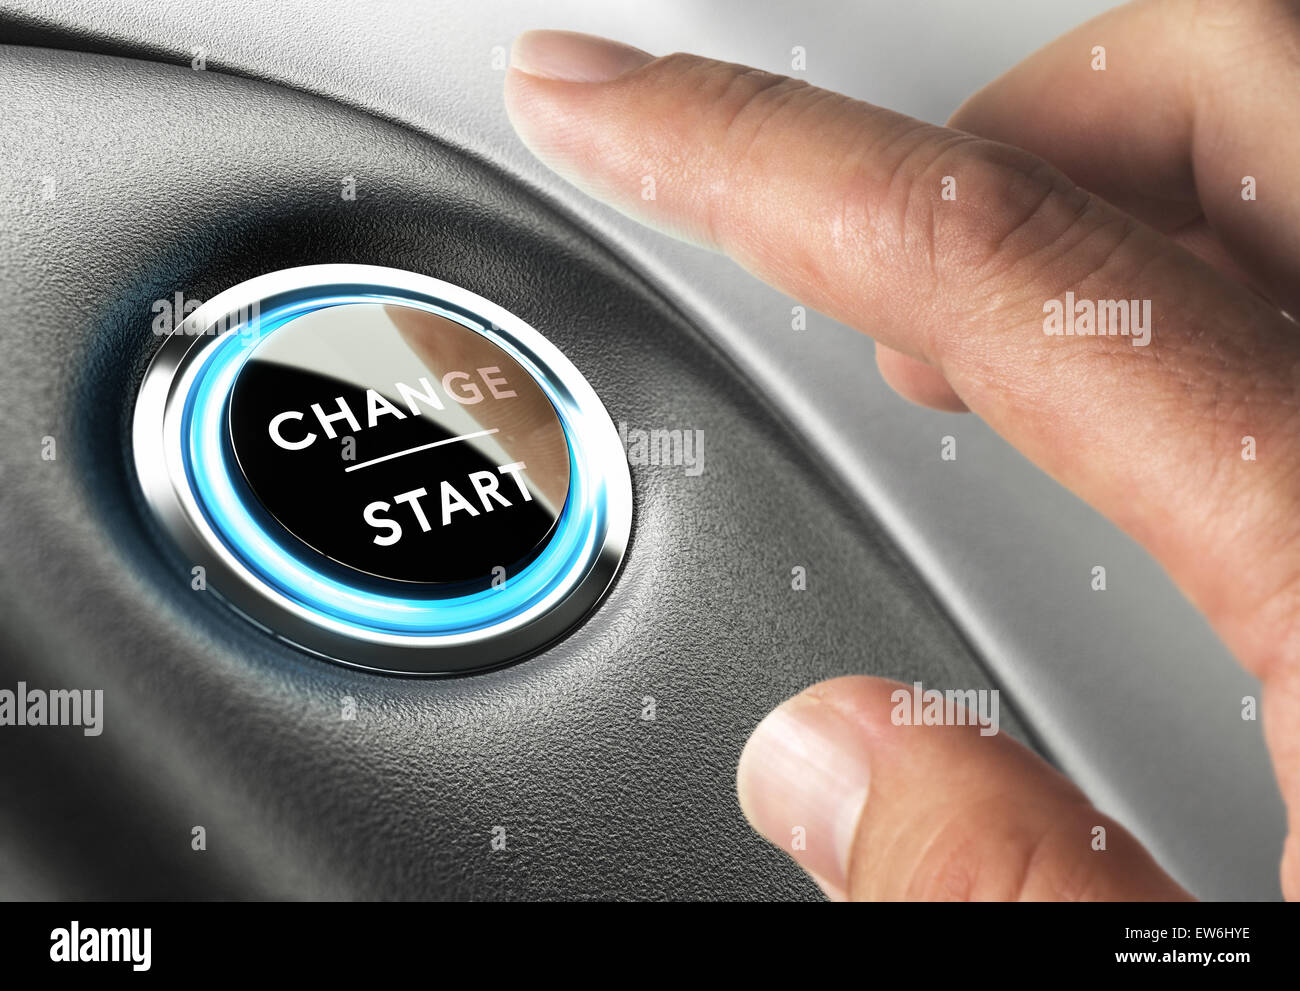 Finger about to press a change button. Concept of change management or changing life - Stock Image